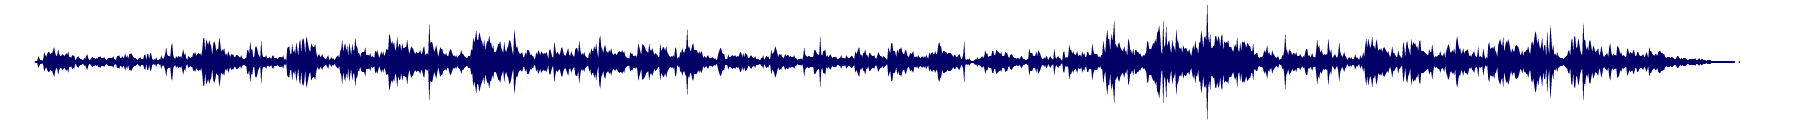 waveform of track #62947